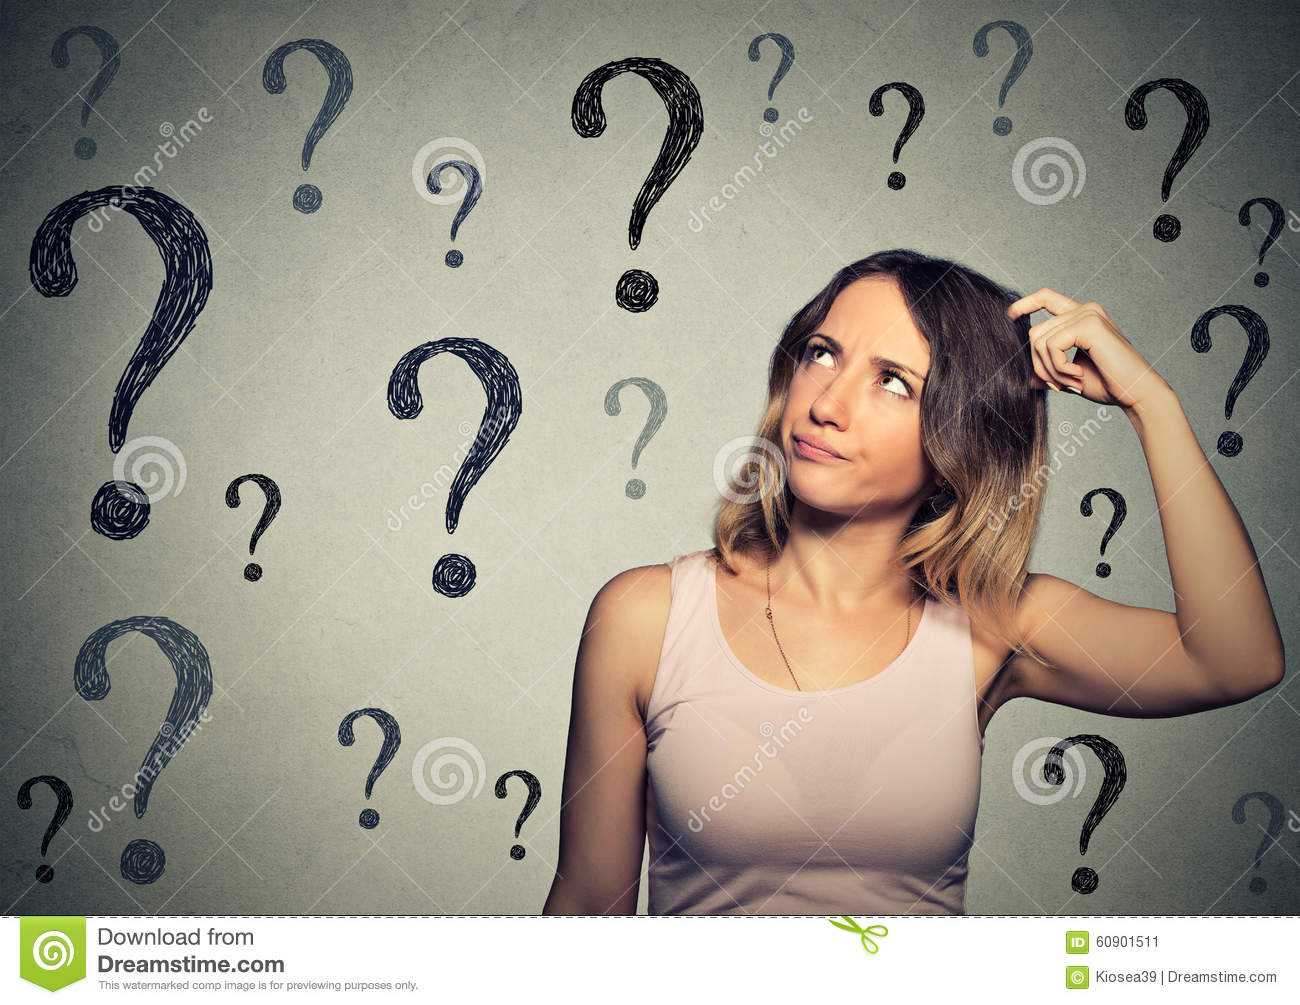 Thinking woman looking up at many questions marks